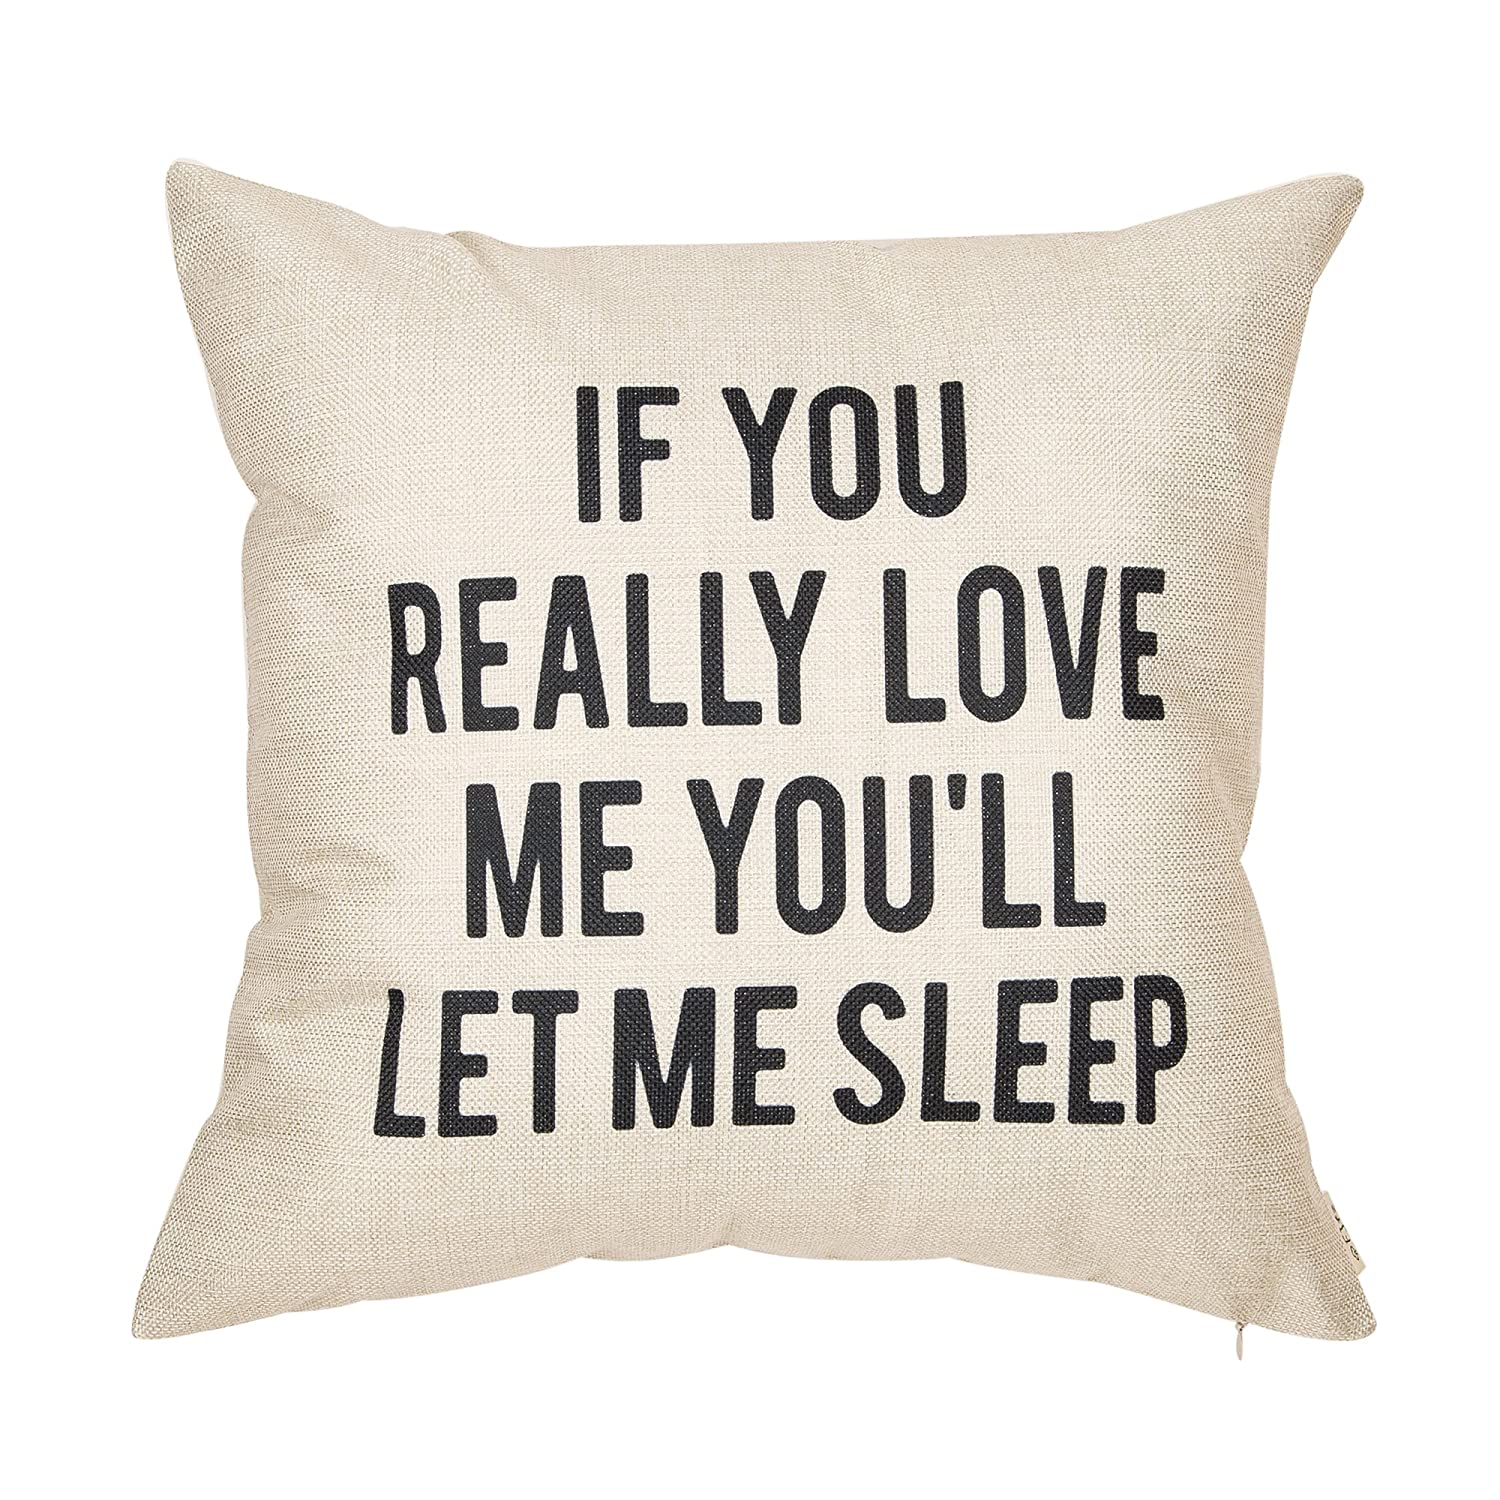 A pillowcase that may have spoken for him -Weird but actually smart Christmas gifts for guys - Todaywedate.com